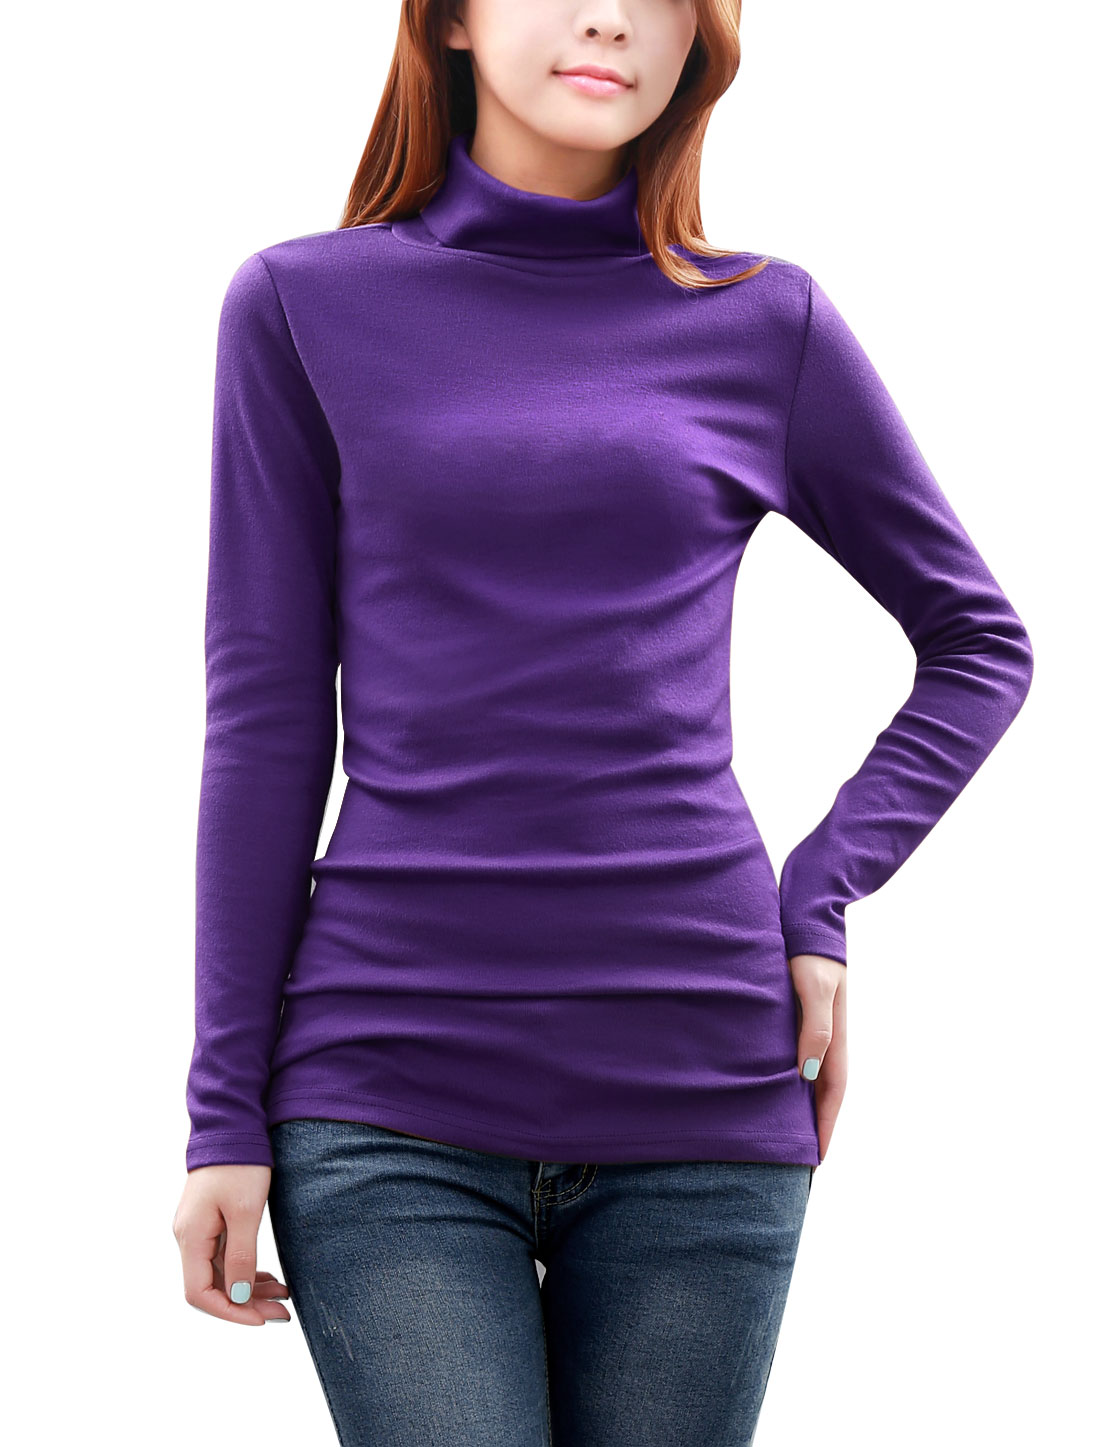 Allegra K Long Sleeves Turtle Neck Straight Autumn Blouse Purple XL